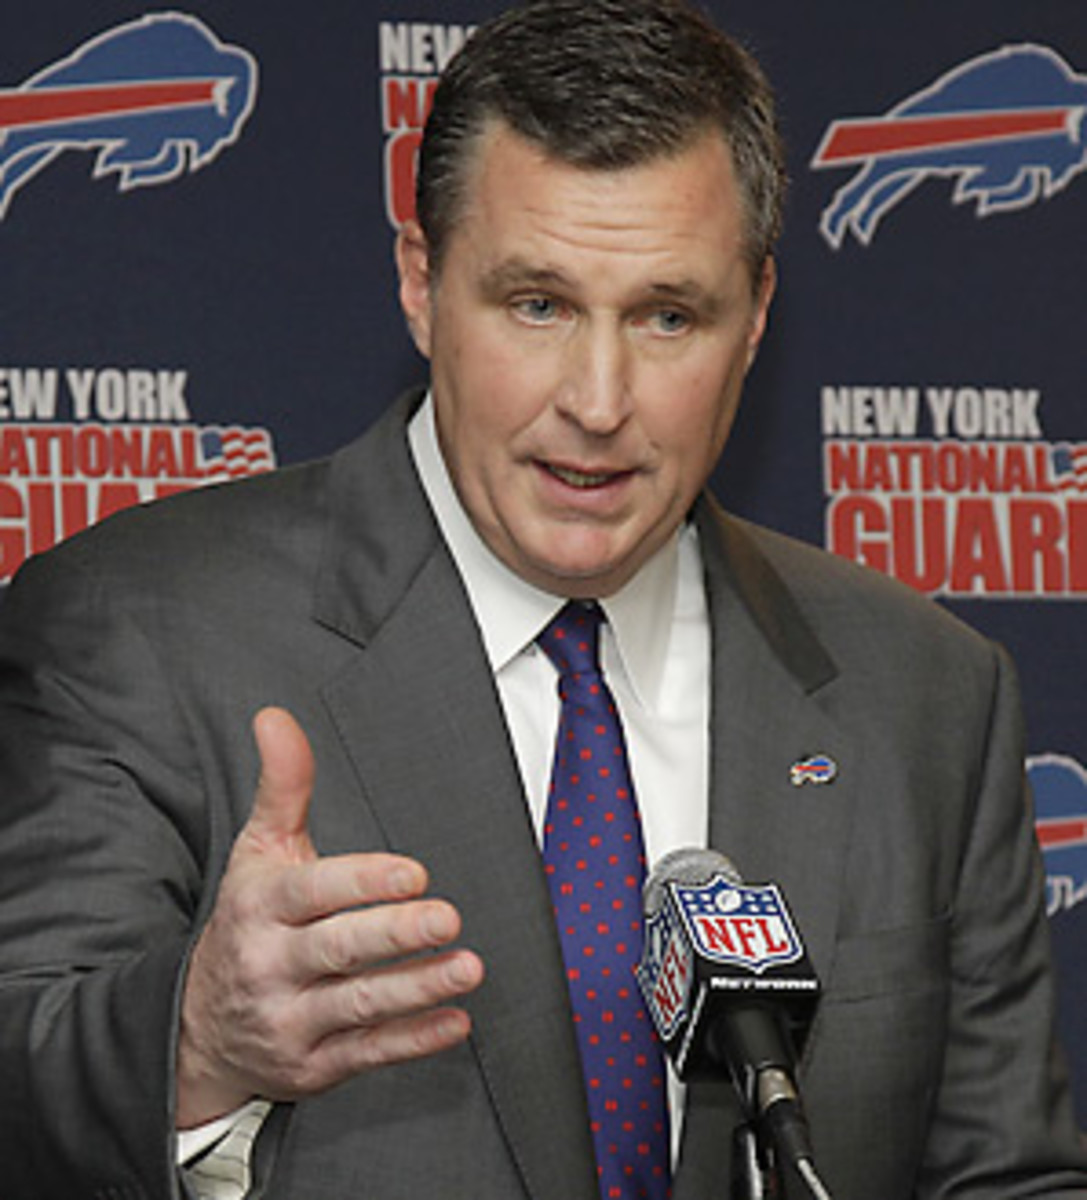 The Buffalo Bills are embarking on a new era with Doug Marrone as coach.